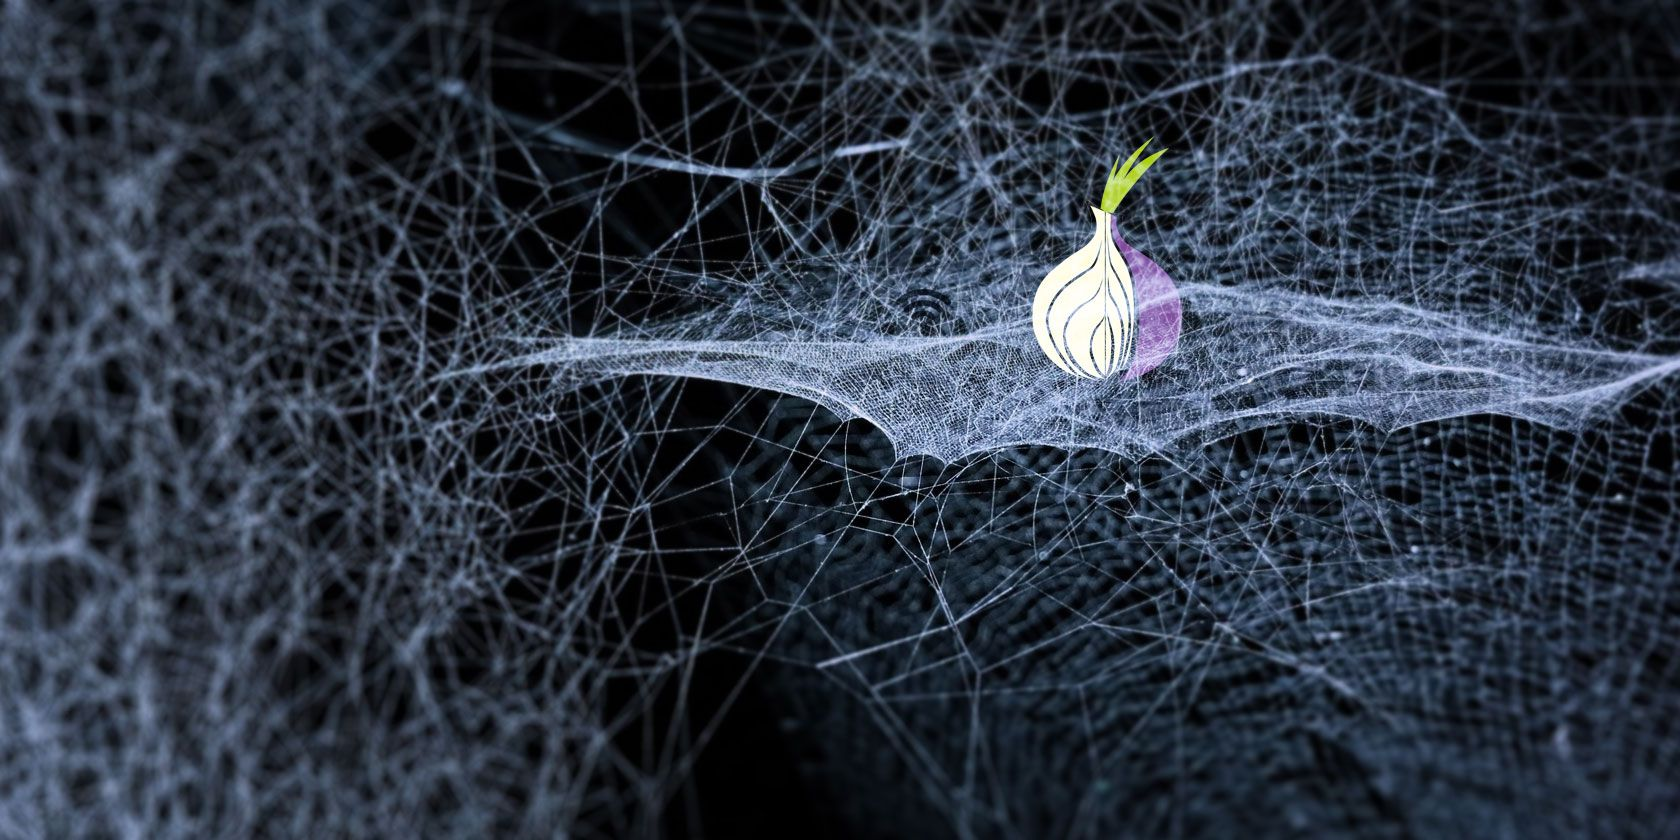 How to Find Active .Onion Dark Web Sites (And Why You